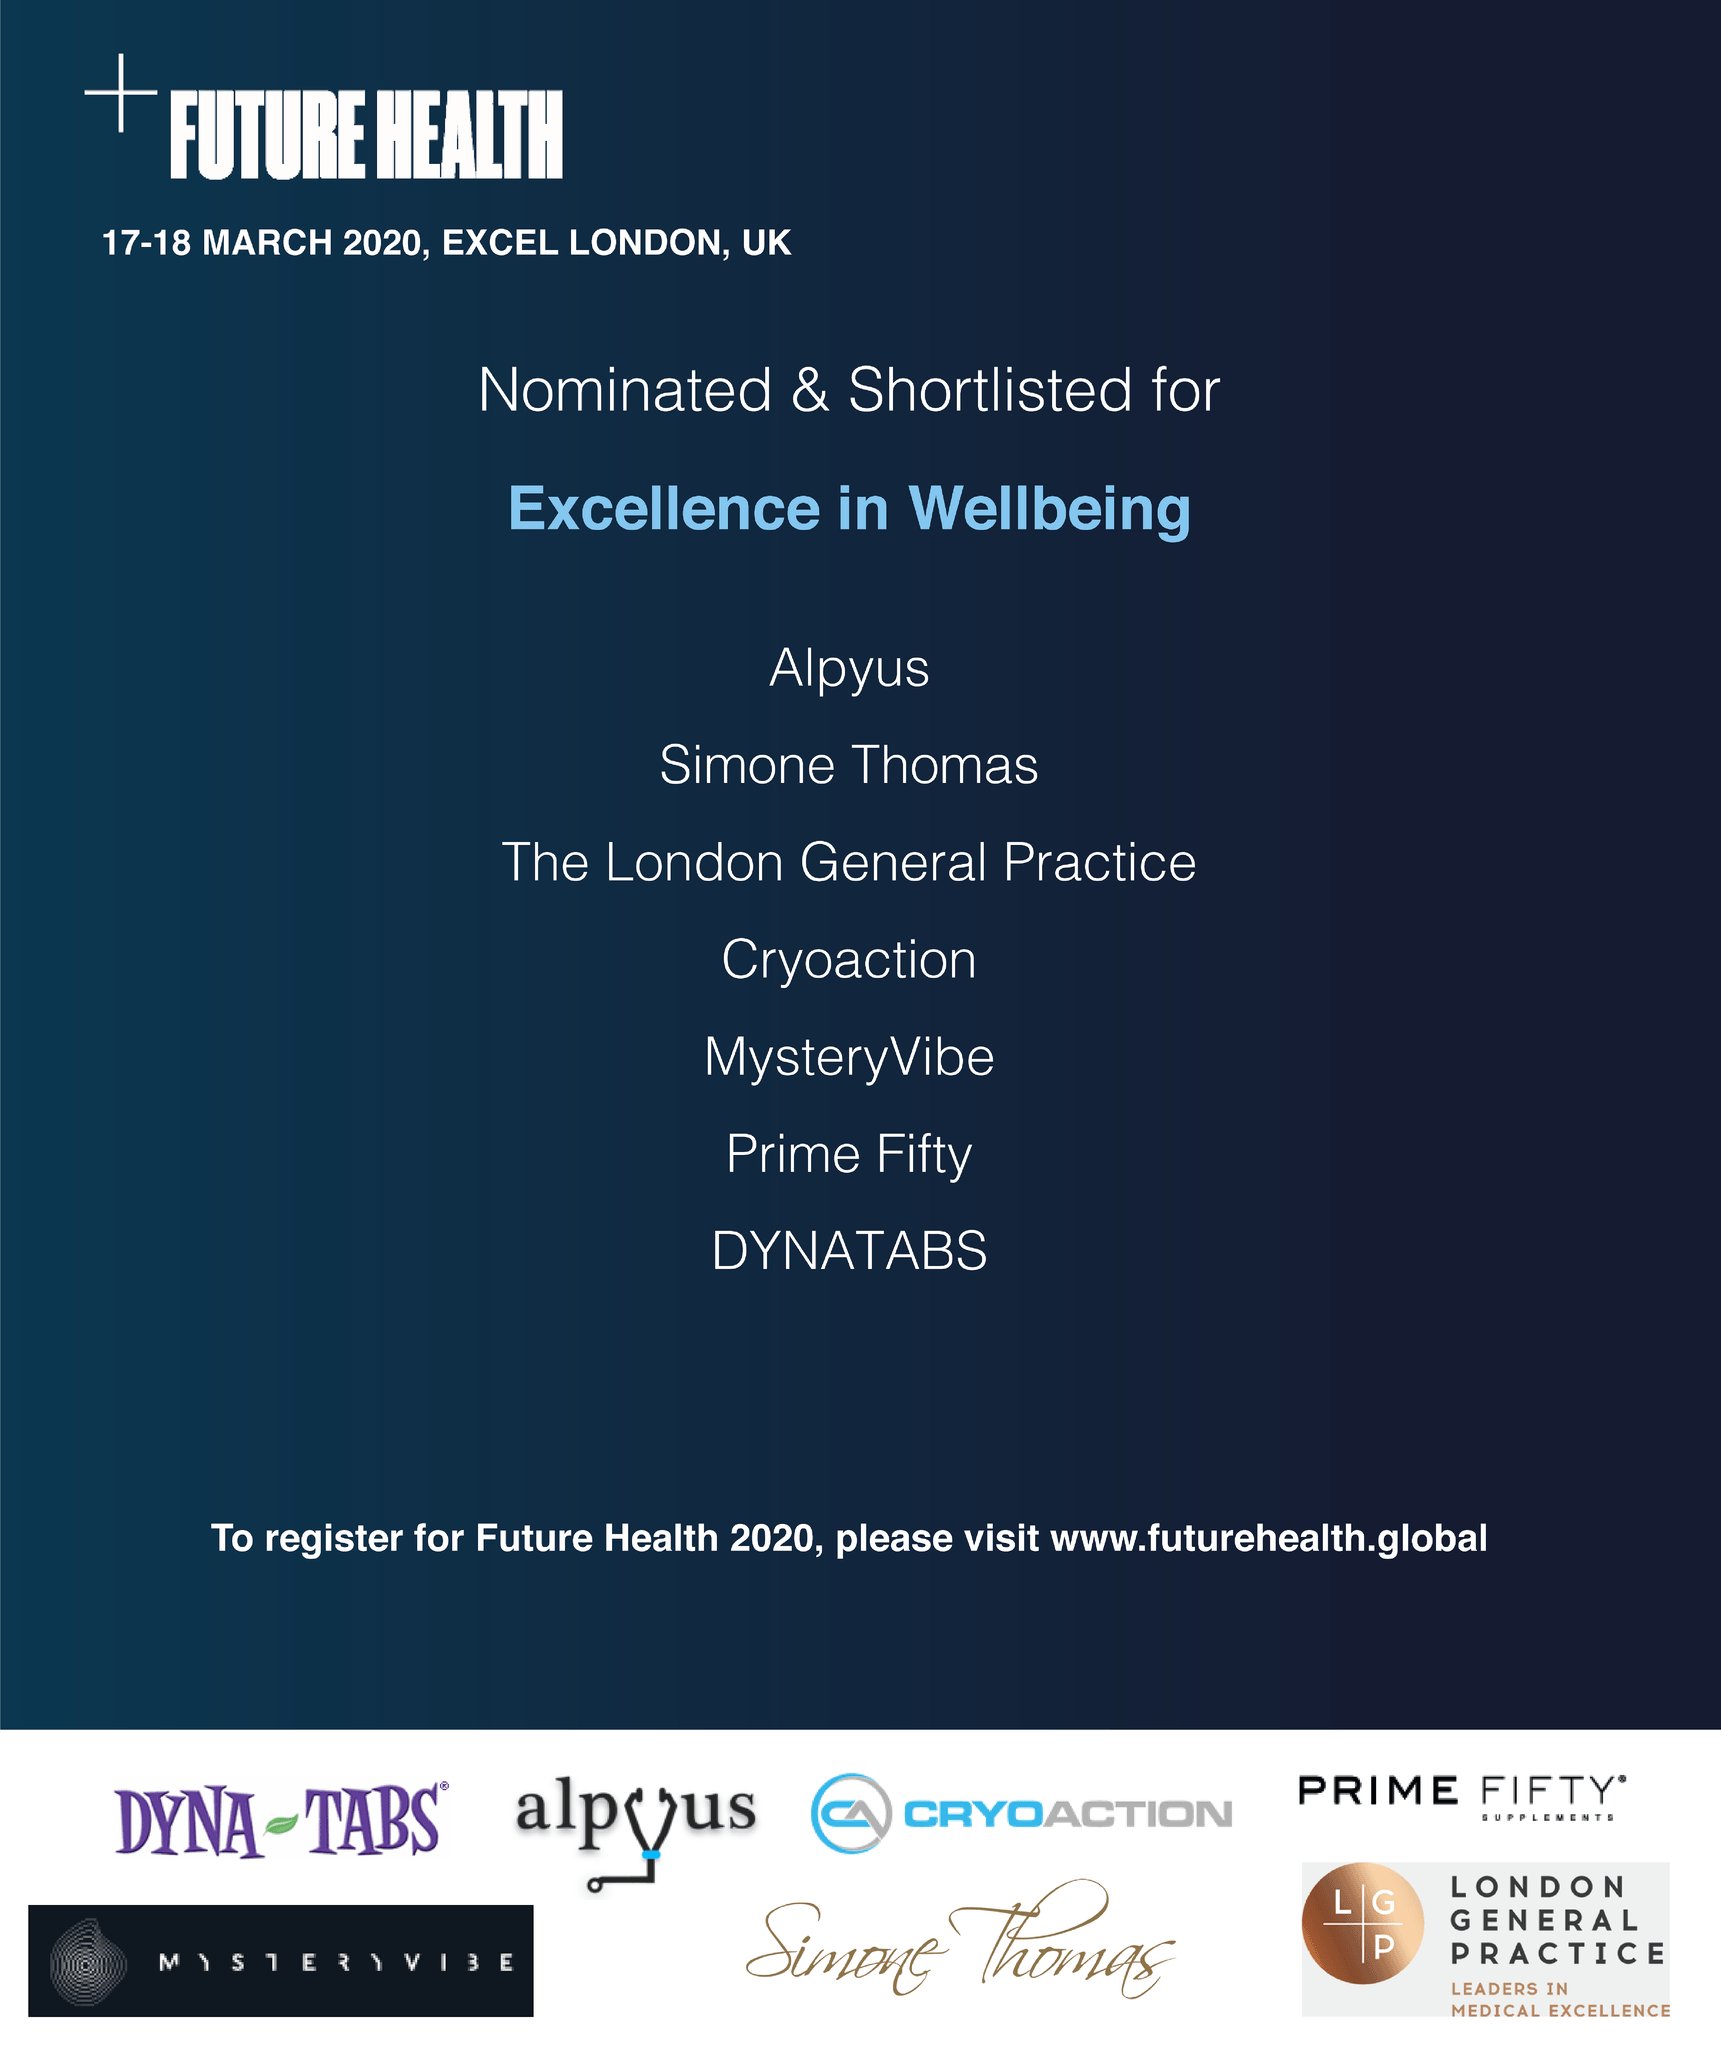 Excellence in Wellbeing